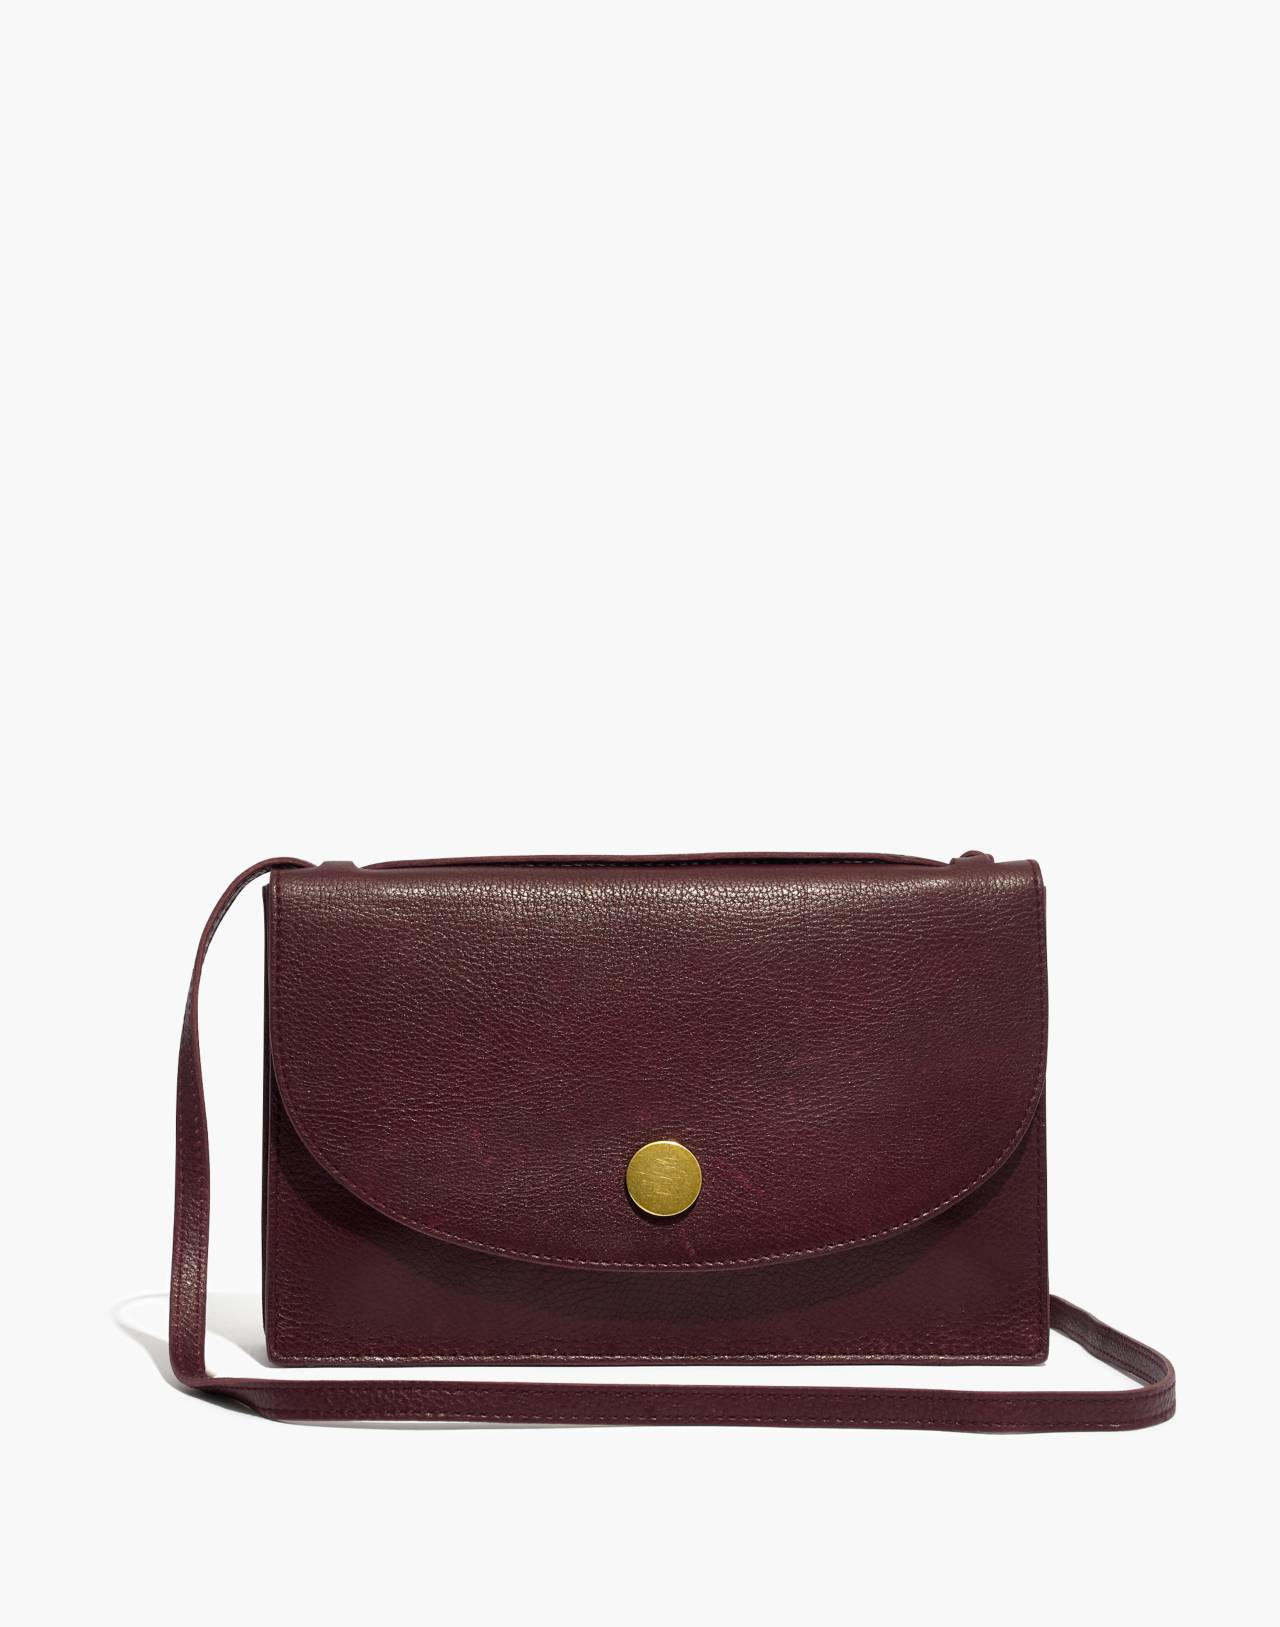 The Slim Convertible Bag in dark cabernet image 1